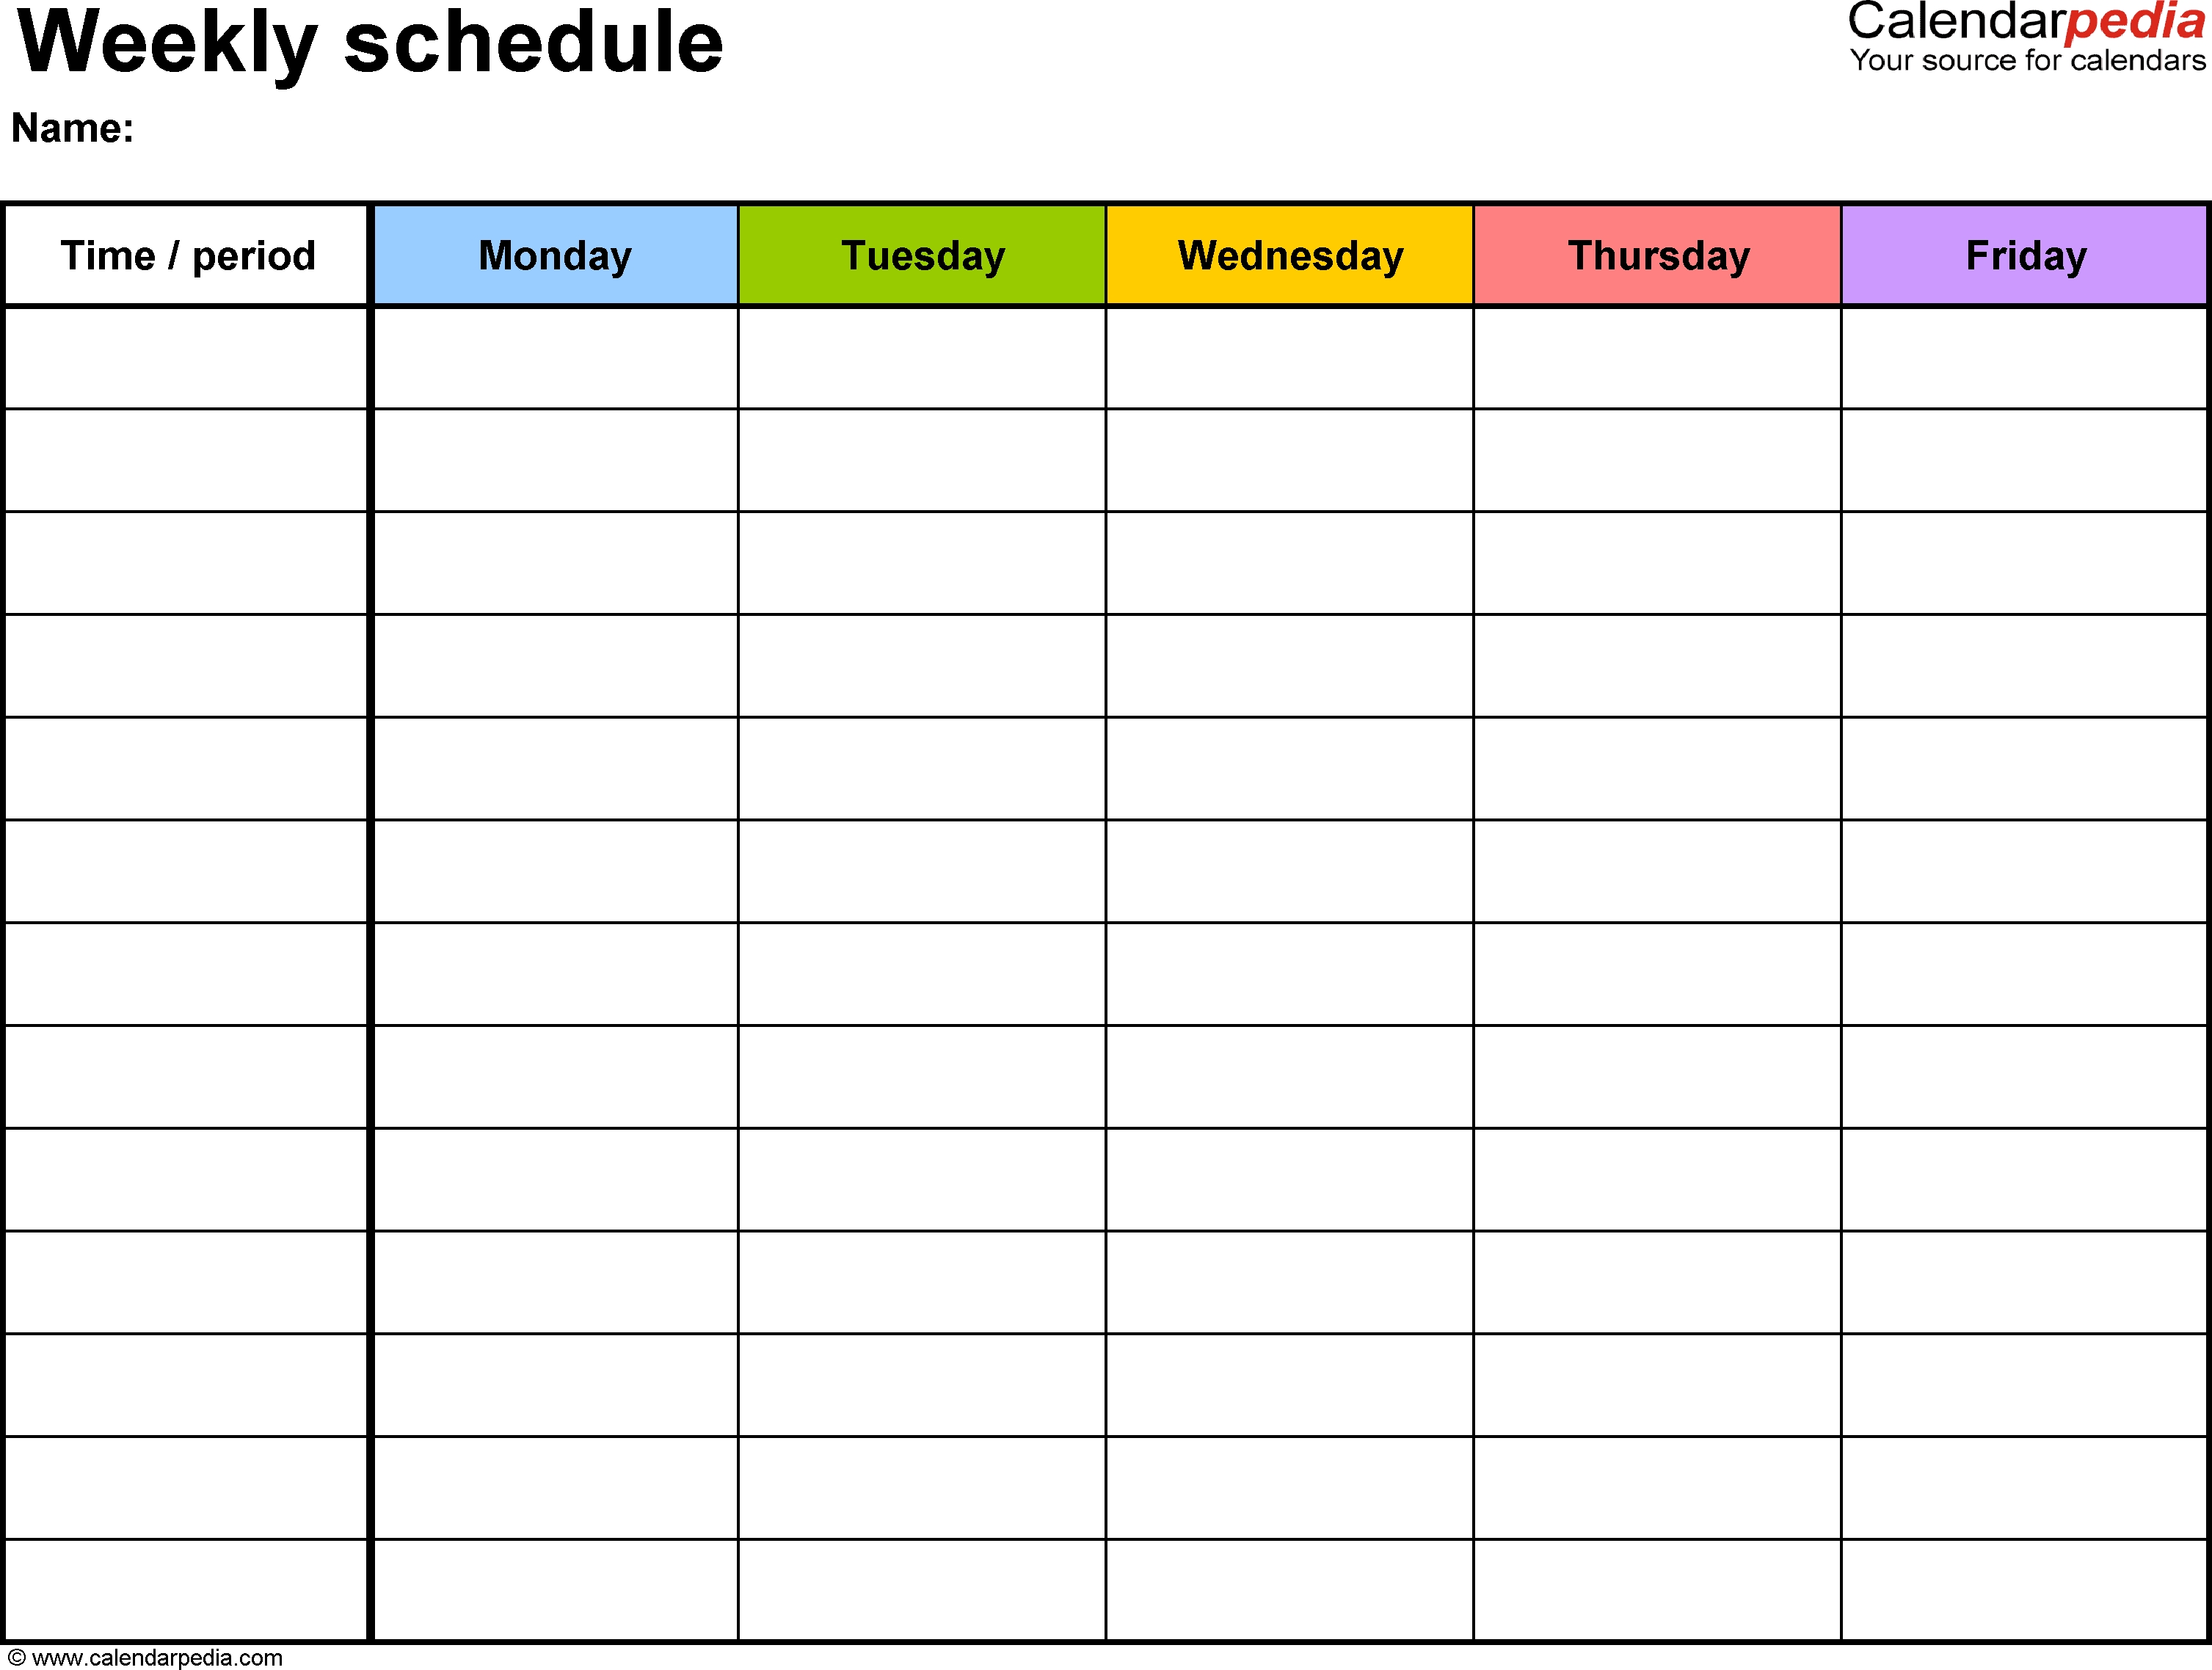 Free Weekly Schedule Templates For Pdf - 18 Templates regarding Printable Weekly Schedule With Hours Monday To Friday